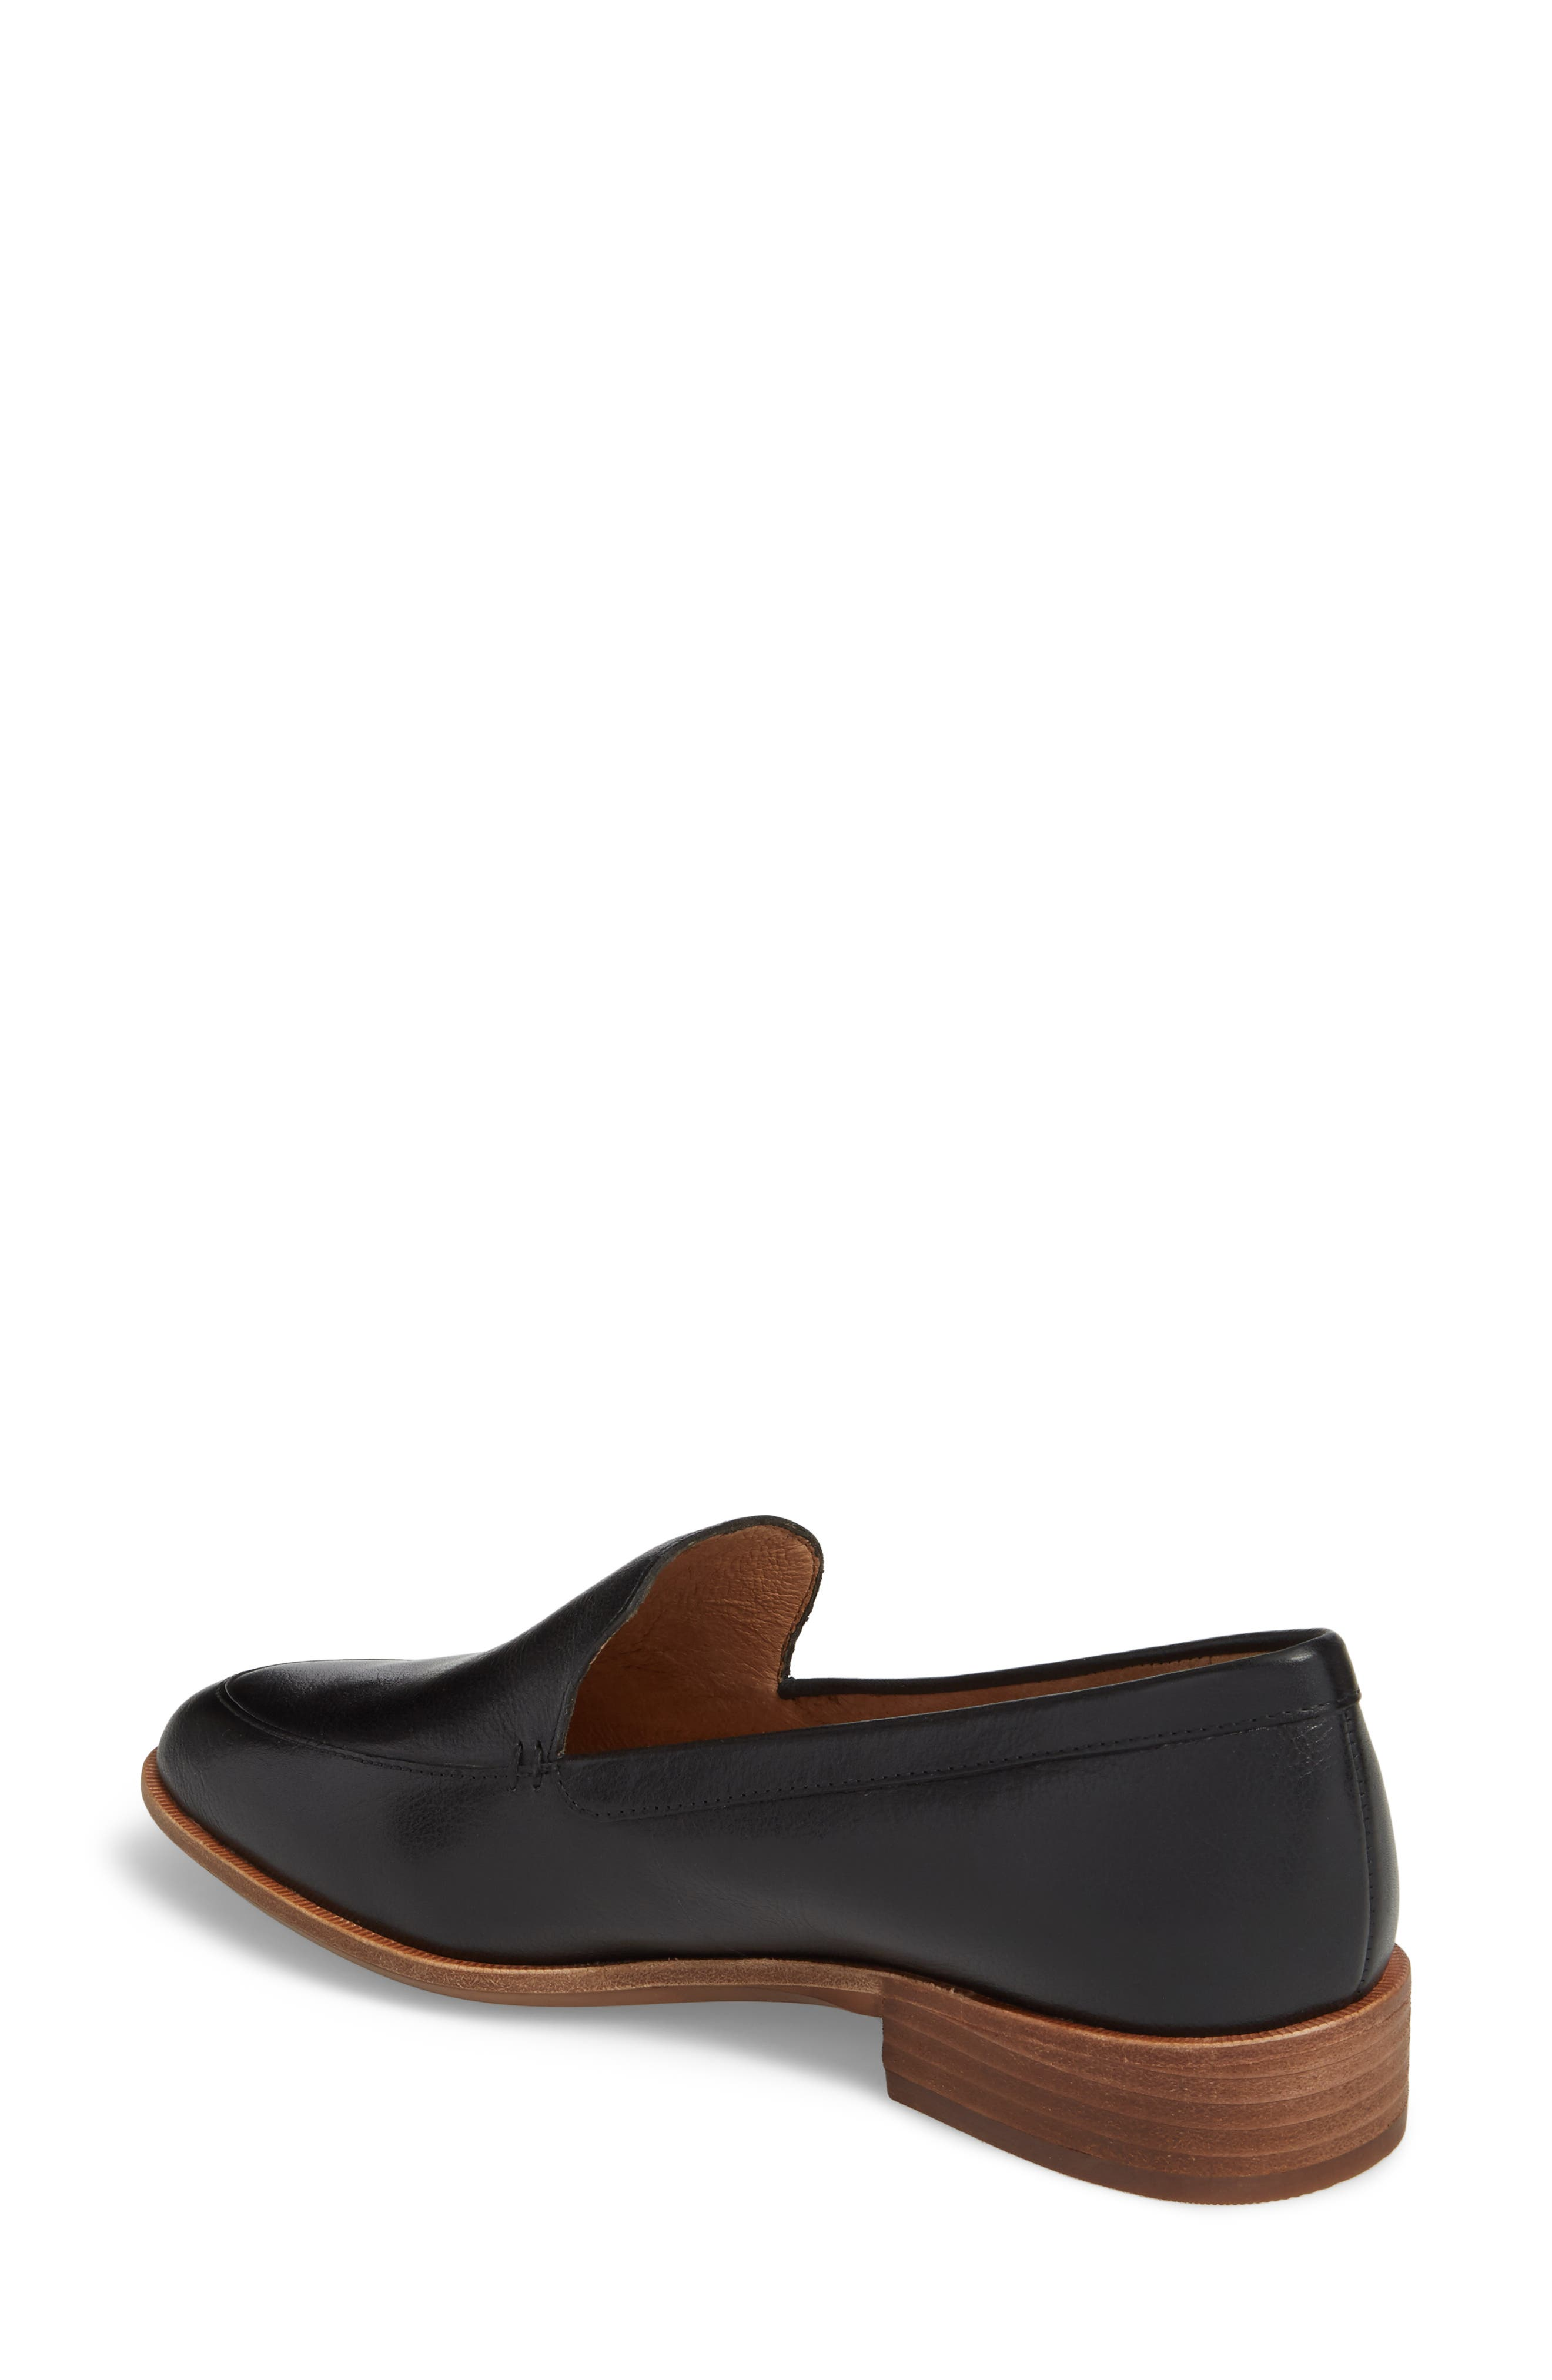 MADEWELL,                             The Frances Loafer,                             Alternate thumbnail 2, color,                             TRUE BLACK LEATHER